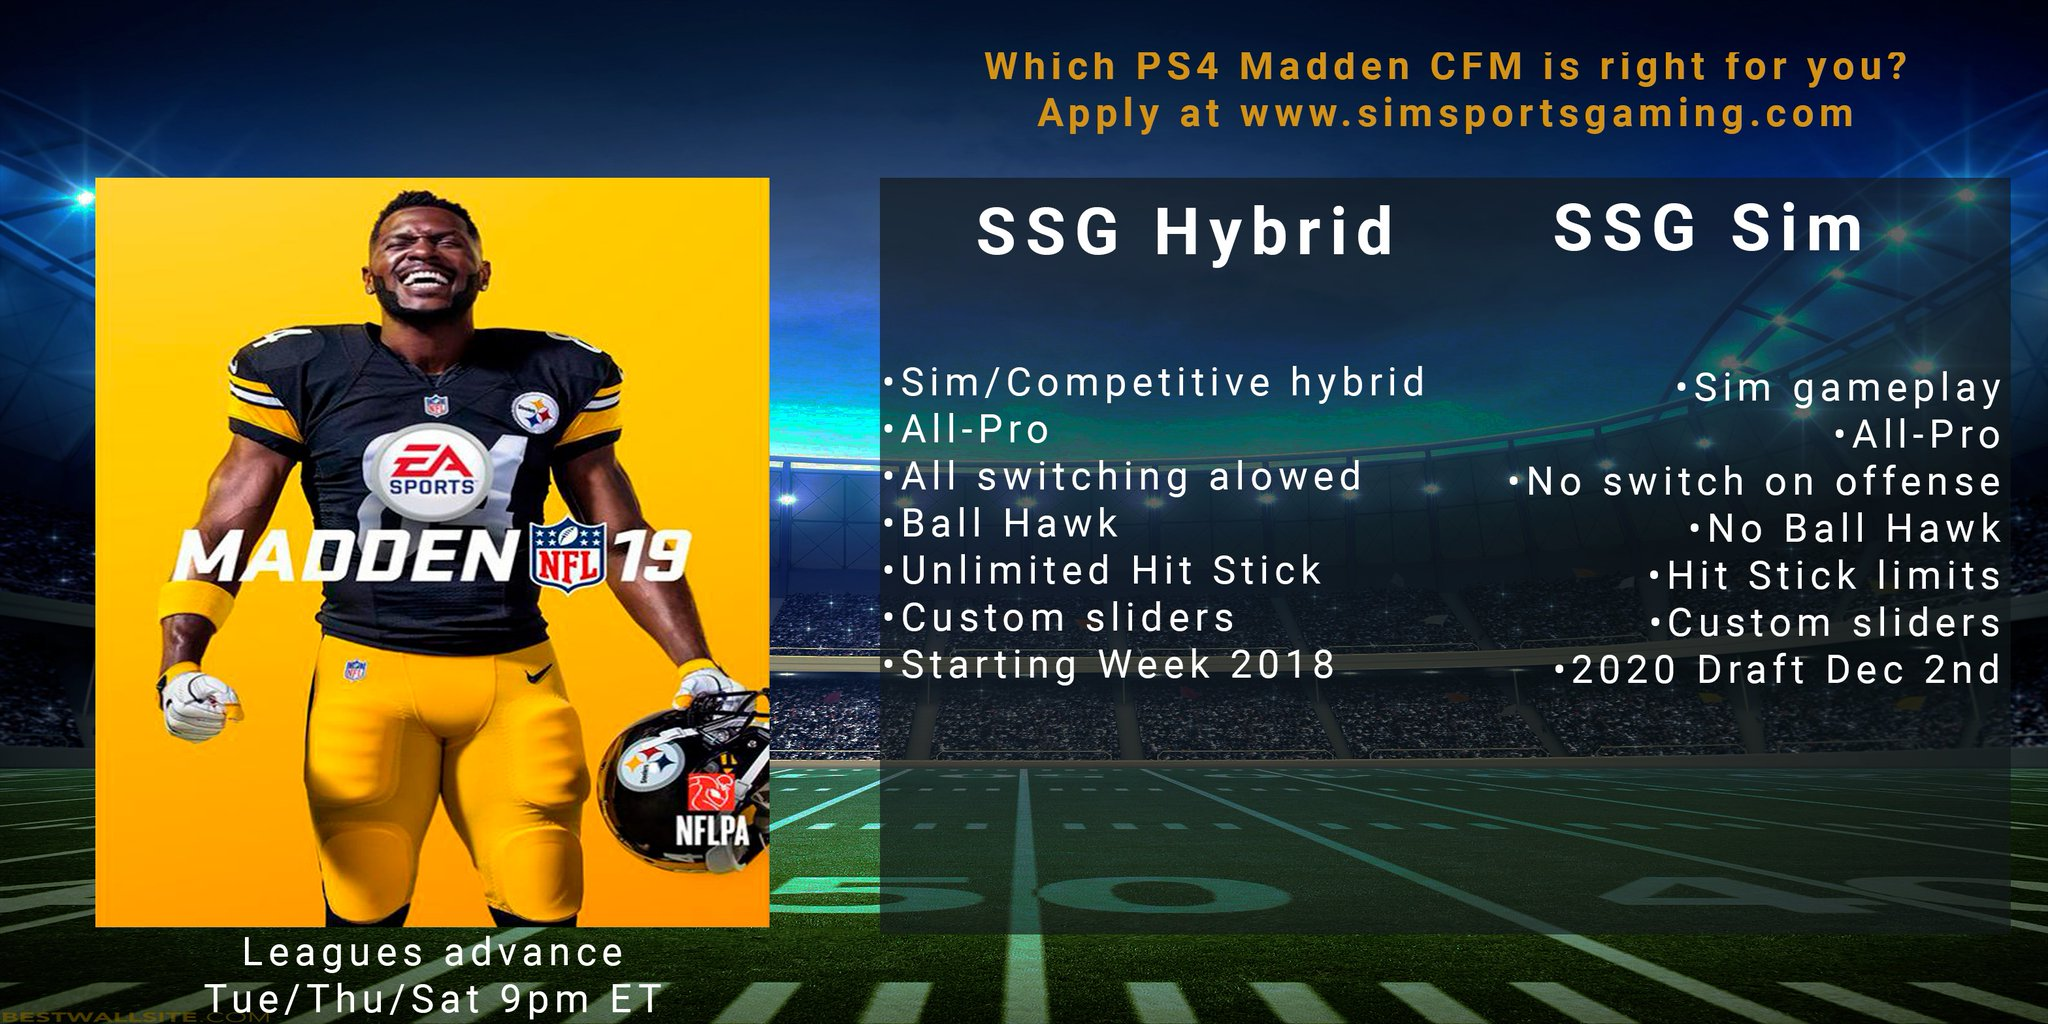 New Hybrid CFM Added to SSG Family Whatever style you prefer, we have a few openings in both PS4 Madden CFMs